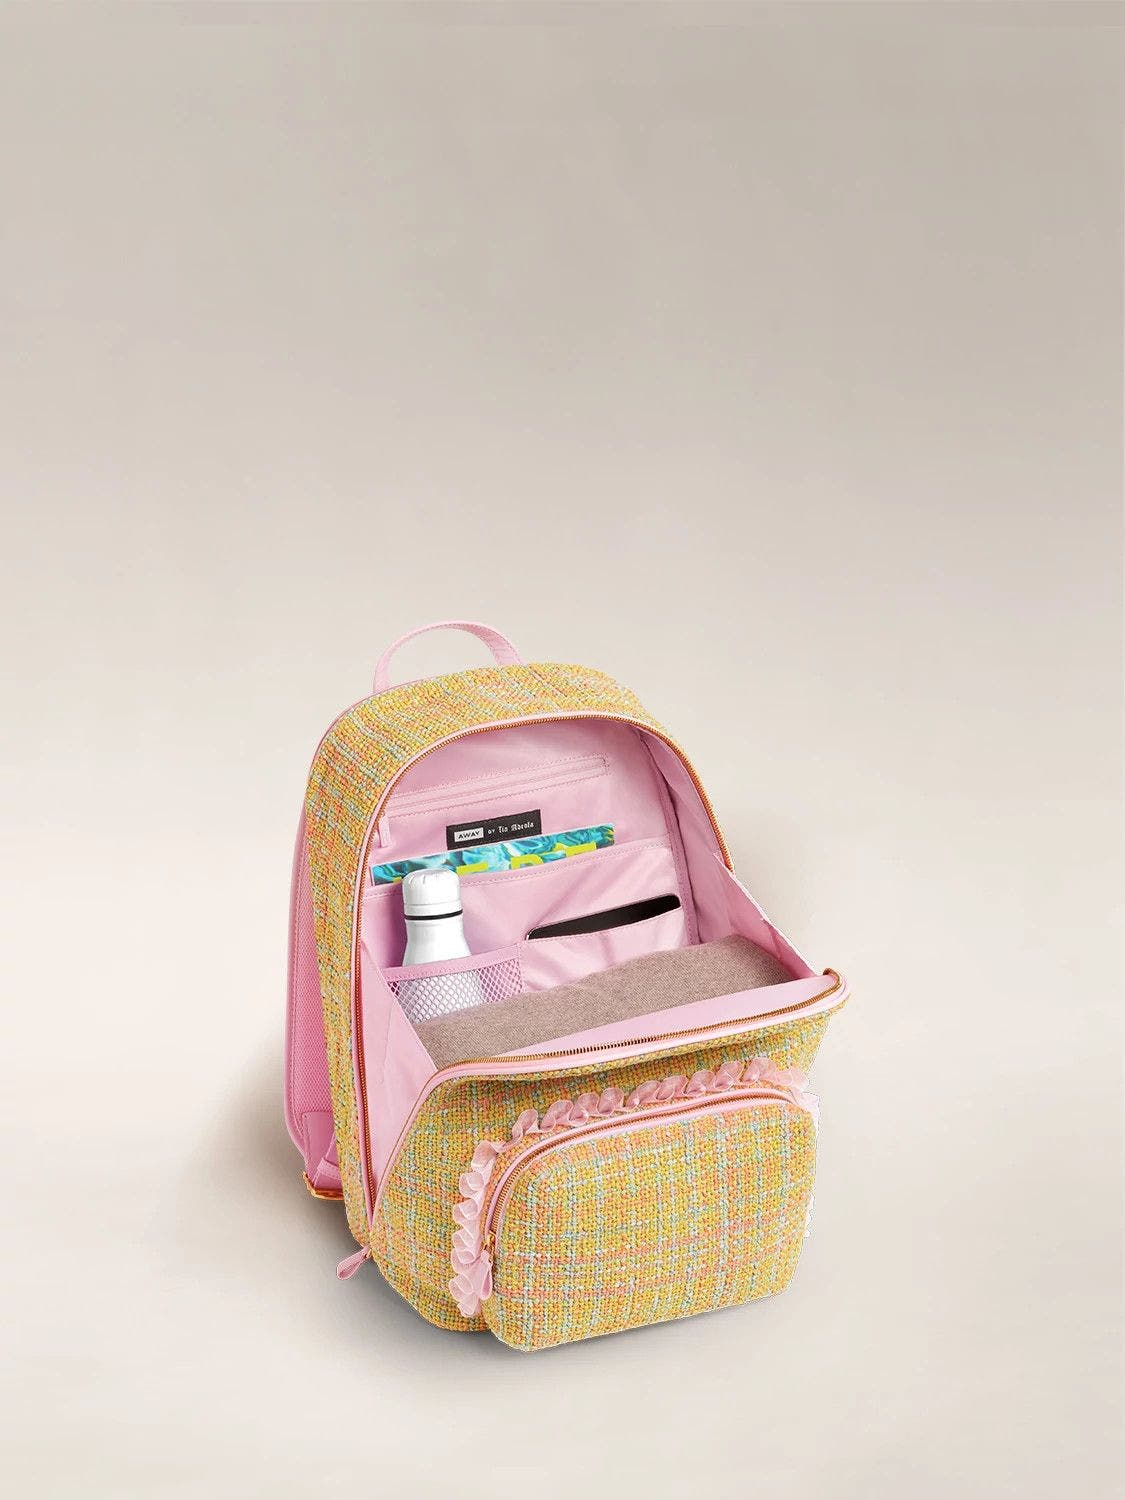 The Front Pocket Backpack by Tia Adeola in pink and yellow twill with pink ruffle details, open and packed with items such as a water hottle and wallet.